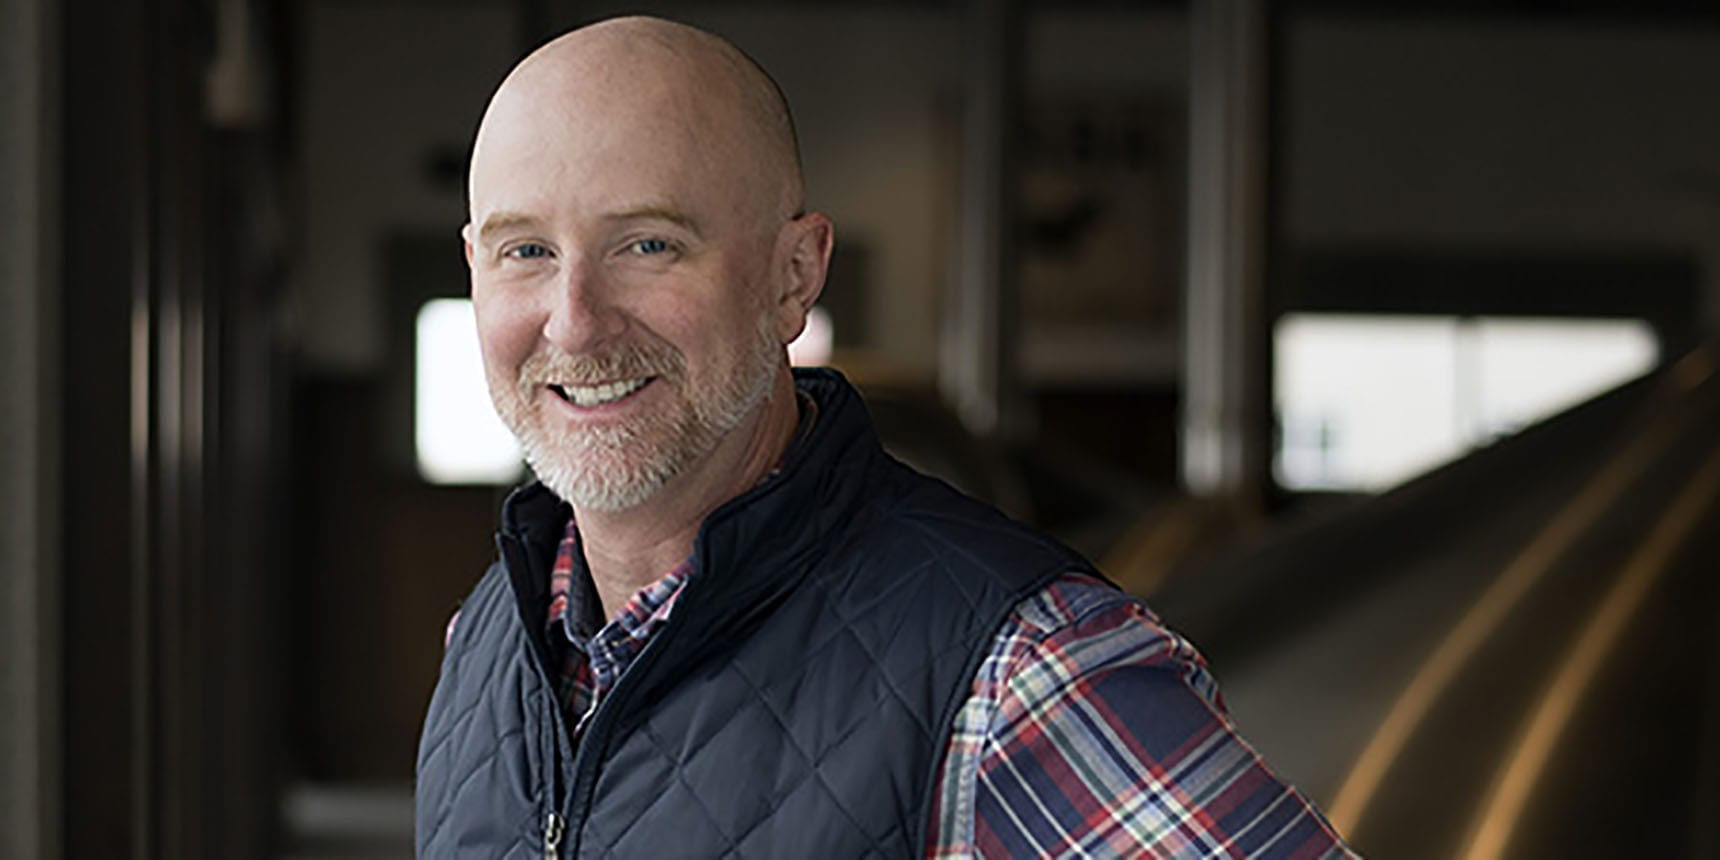 Jeremy Ragonese named Uinta Brewing president on March 18, 2019.